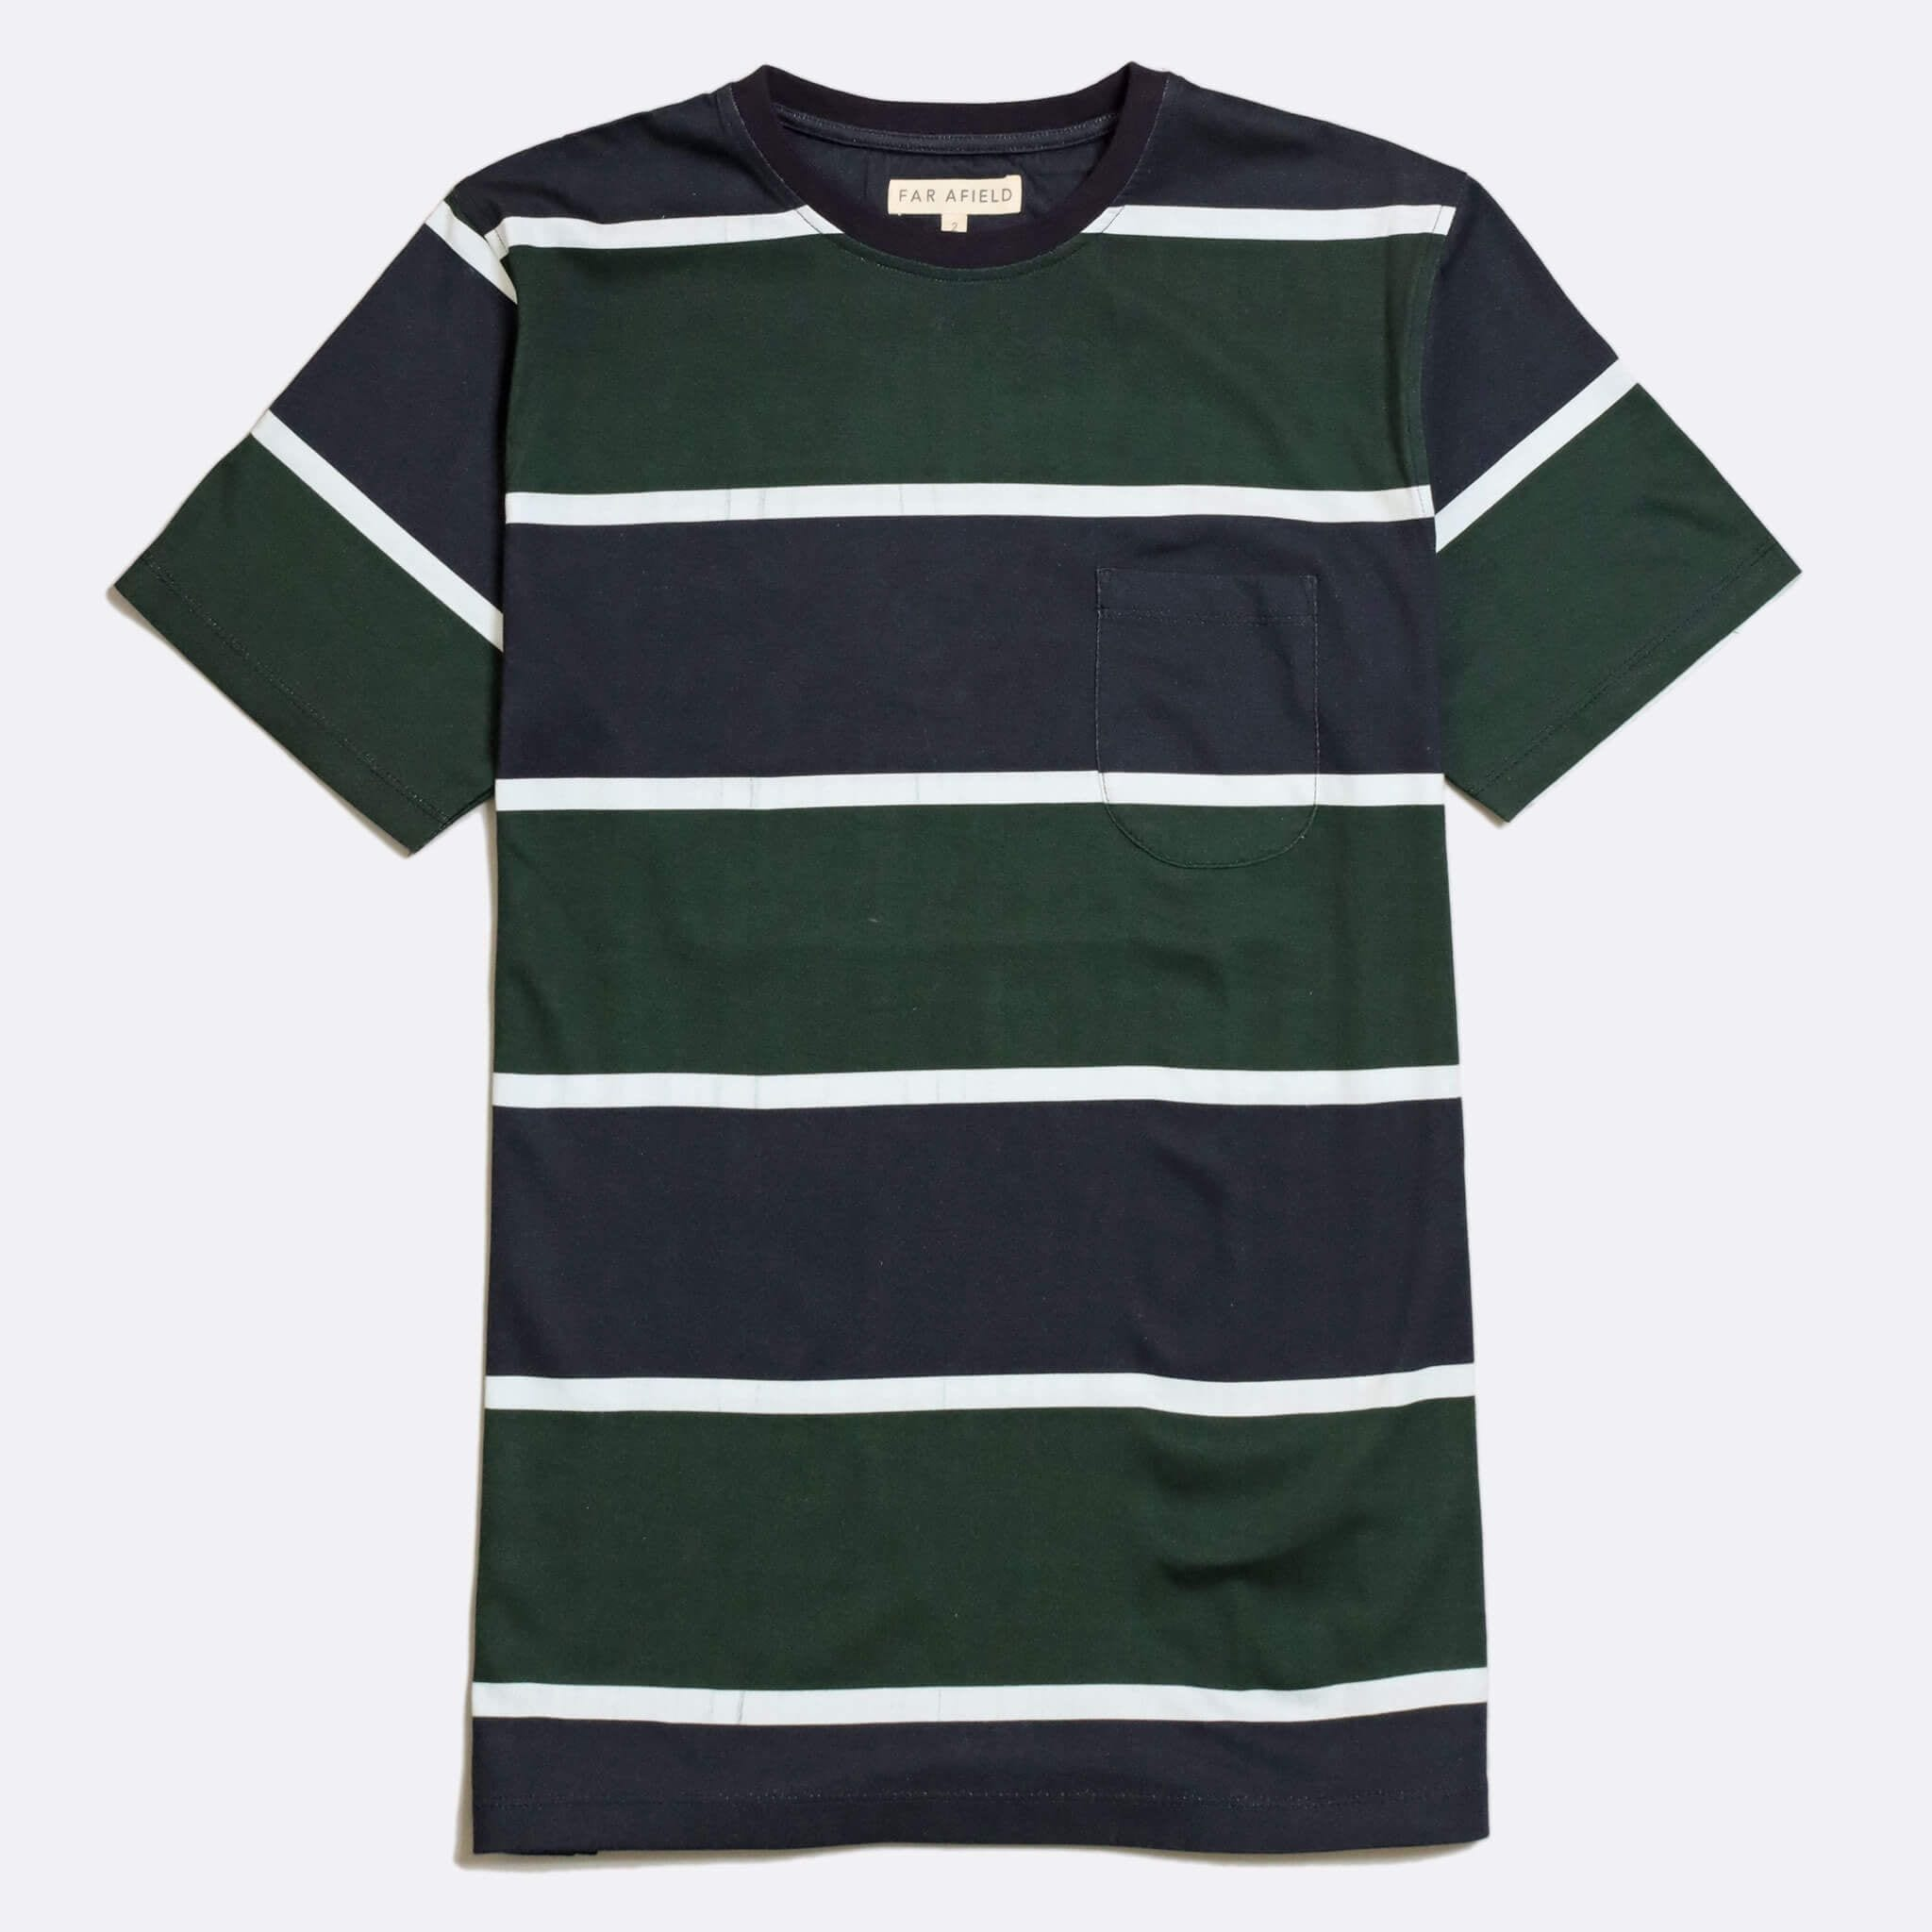 Far Afield Dos Stripe T-Shirt a Navy/Green Organic Cotton Fabric Short Sleeve Casual